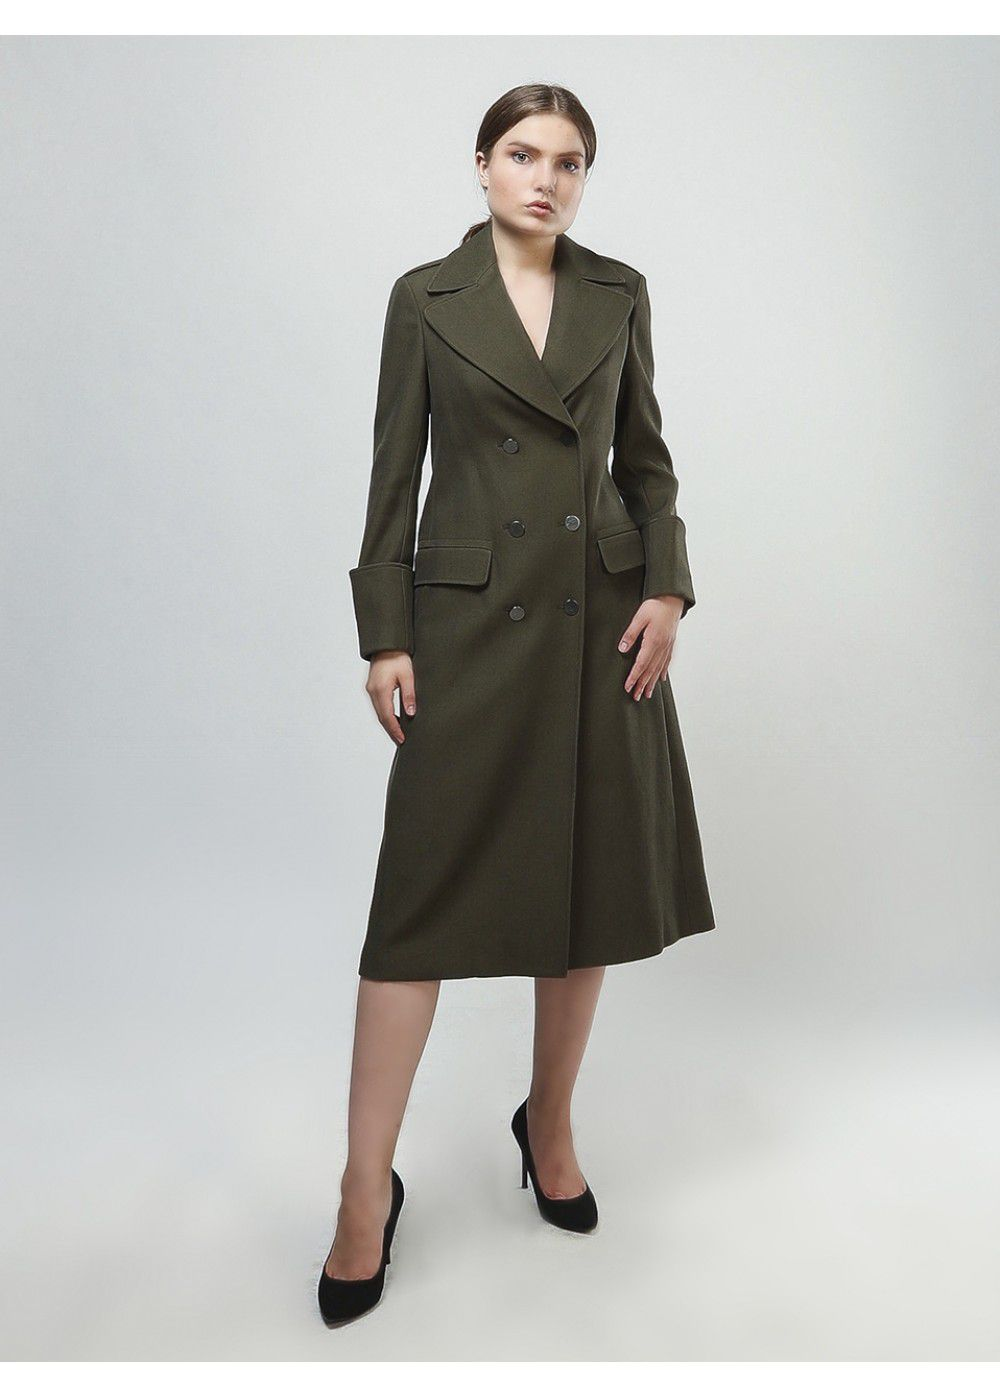 A.L.C. Virgin Wool Blend Coat